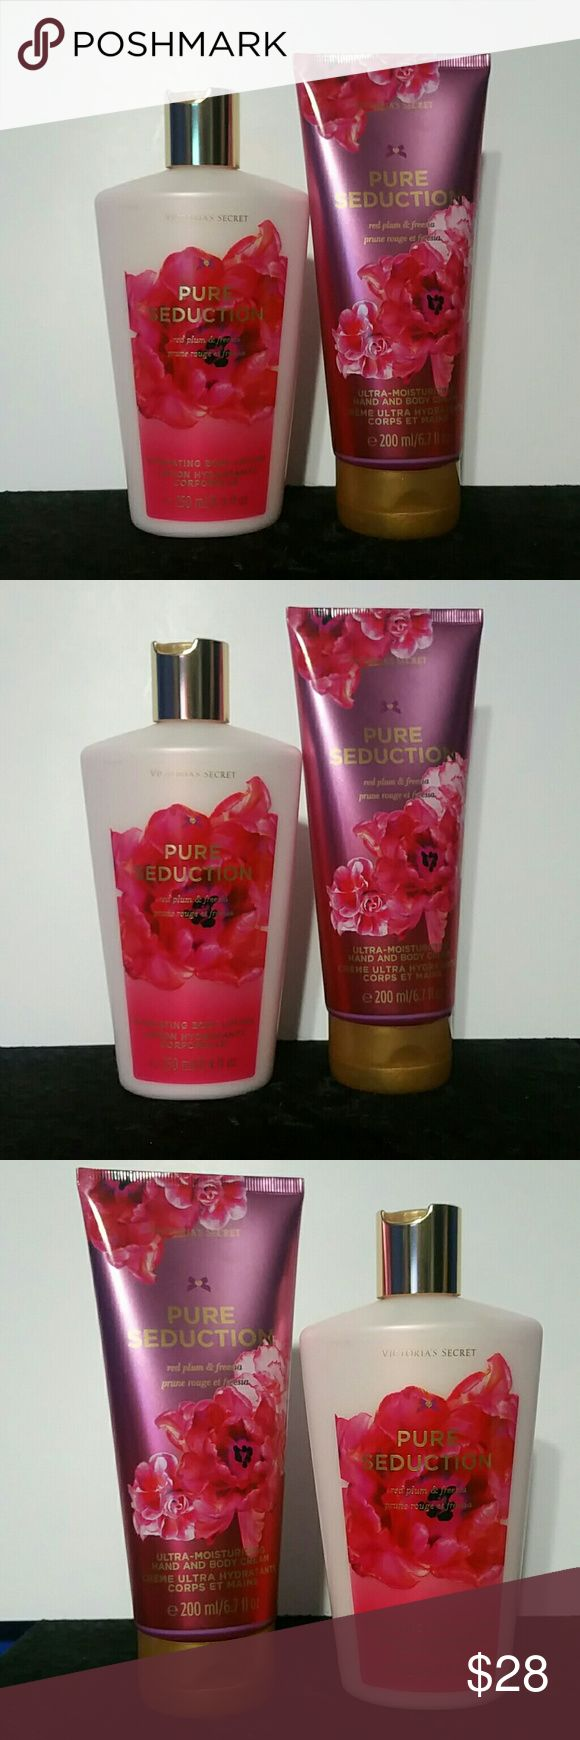 2 PURE SEDUCTION BODY LOTION & BODY CREAM BIG! NEW VICTORIA'S SECRET SET/BUNDLE OF 2  PURE SEDUCTION BODY LOTION & HAND & BODY CREAM. BIGGEST/FULL SIZES!!  1) PURE SEDUCTION HYDRATING BODY LOTION 8.4OZ/250ML BIGGEST SIZE!  2) PURE SEDUCTION ULTRA MOISTURIZING HAND & BODY CREAM 6.7OZ/200G BIGGEST SIZE!  NEW! BRAND NEW! NEVER USED, TESTED, OR OPENED!  FAST SHIPPING!!  BUNDLE & SAVE!!  No Smoking, Buy It Now, Bundle Discounts Available, Reasonable Offers Accepted, NO Trades!  HAPPY SHOPPING=)…